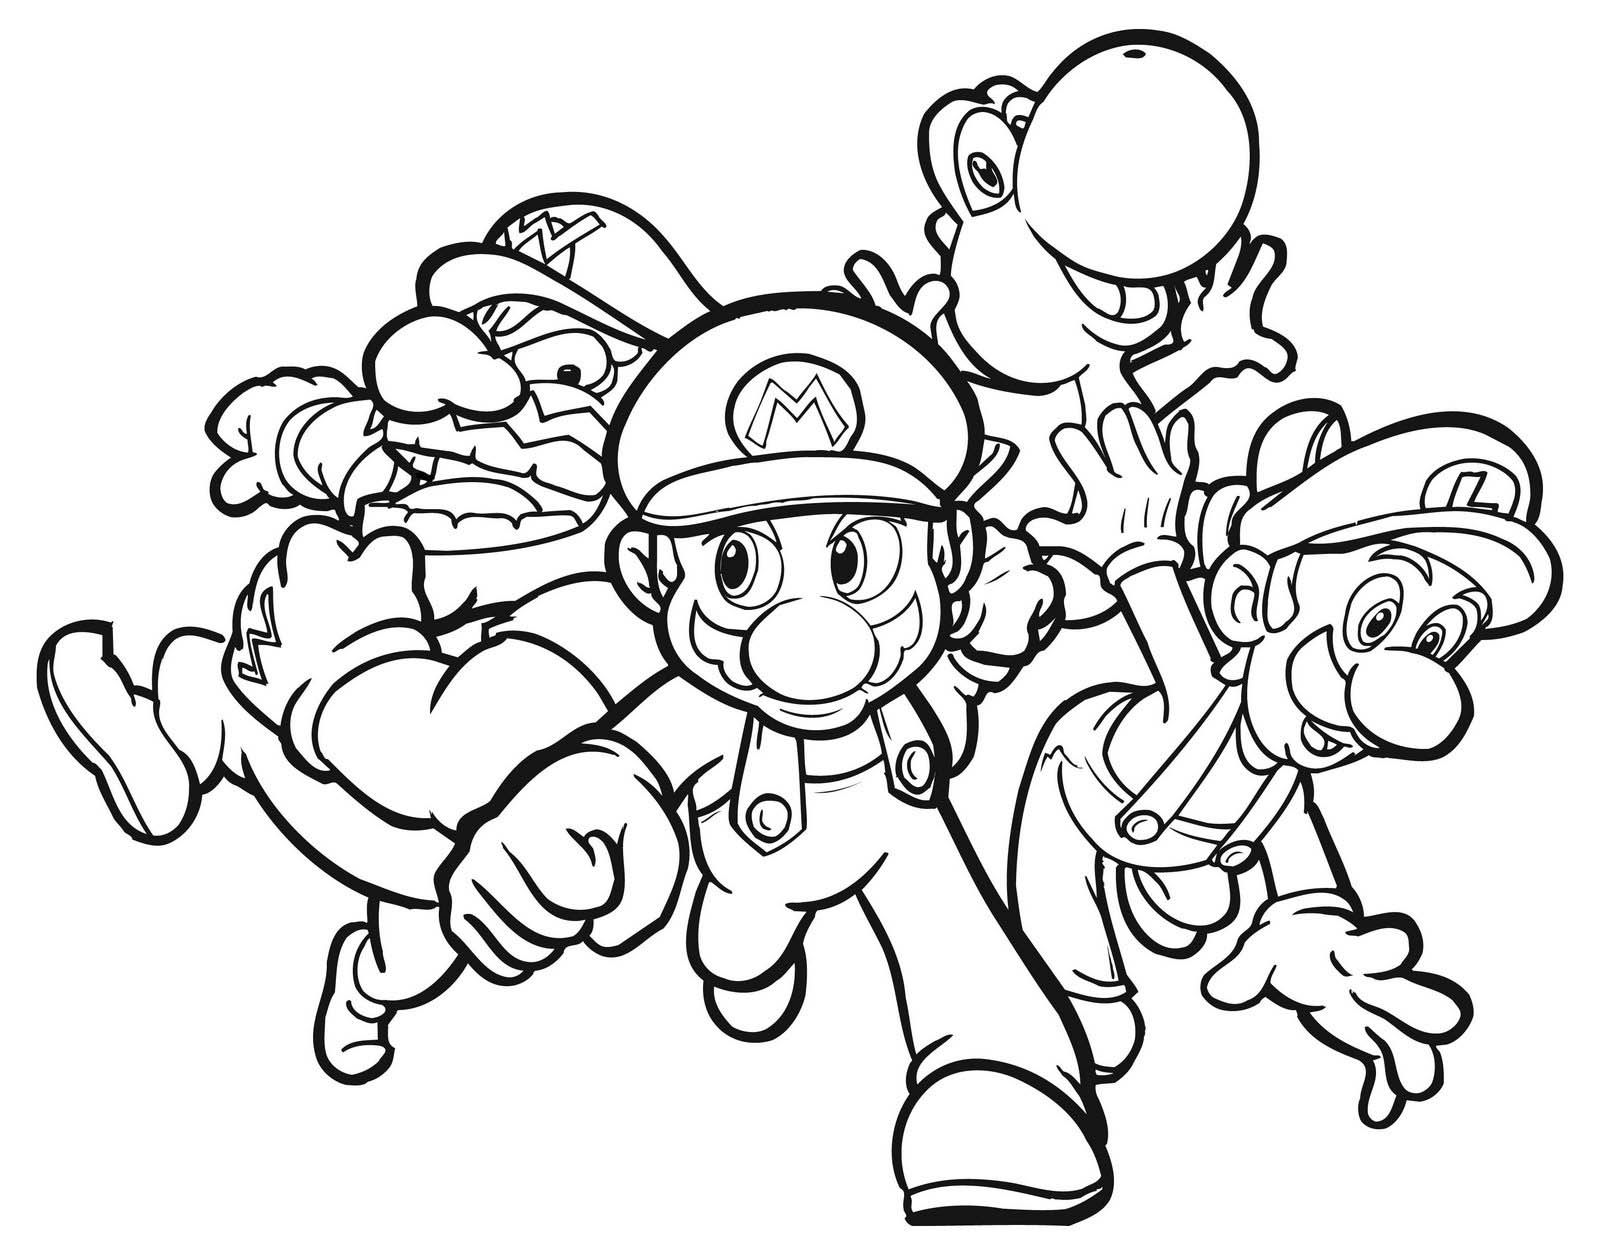 super mario coloring page - Ideal.vistalist.co